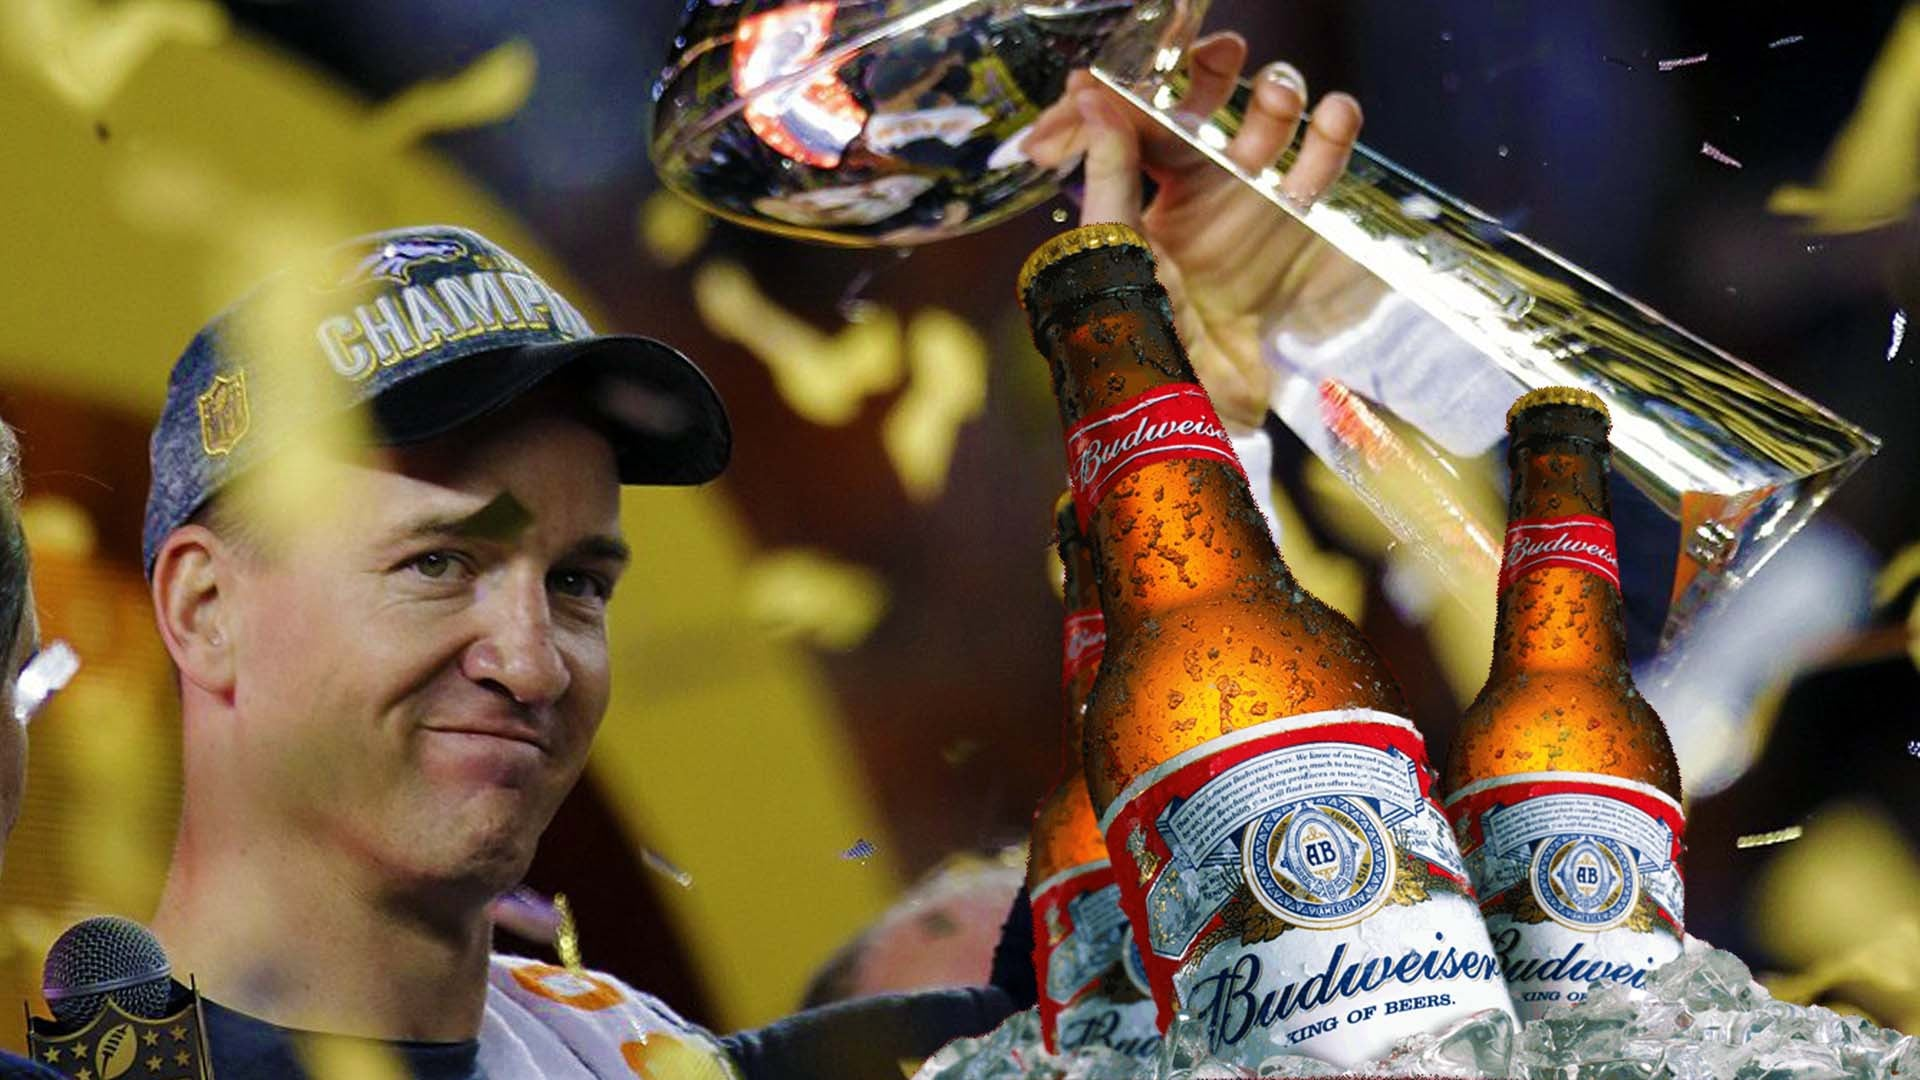 We found out how much Budweiser paid Peyton Manning to mention them